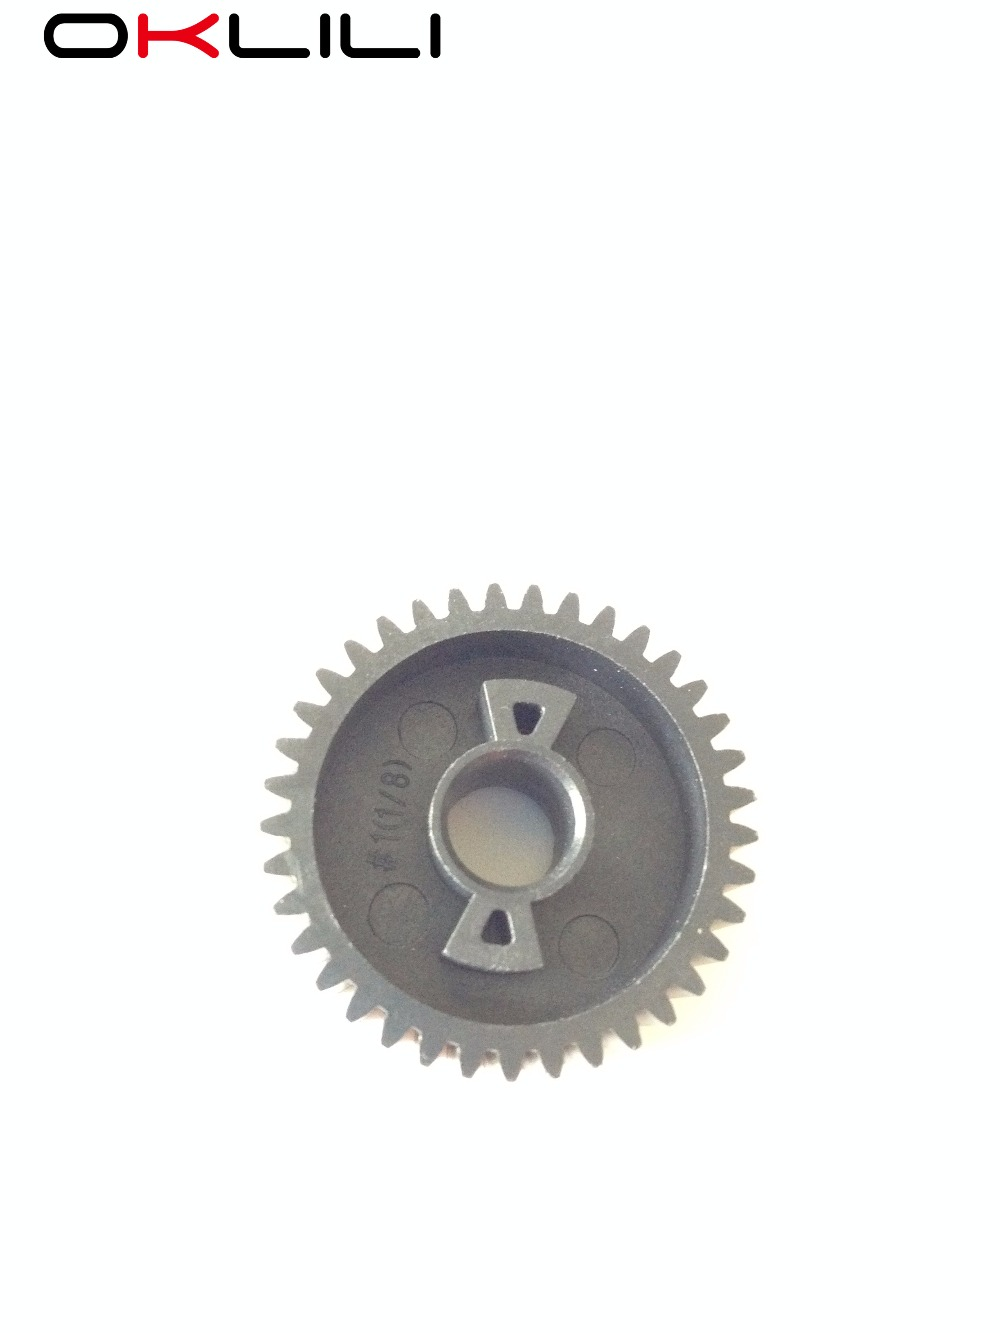 10X JC66-01637A Outer Fuser Drive Gear for Samsung ML2850 ML2851 ML2855 SCX4824 SCX4825 SCX4826 SCX4828 for <font><b>Xerox</b></font> <font><b>3250</b></font> 3210 3220 image